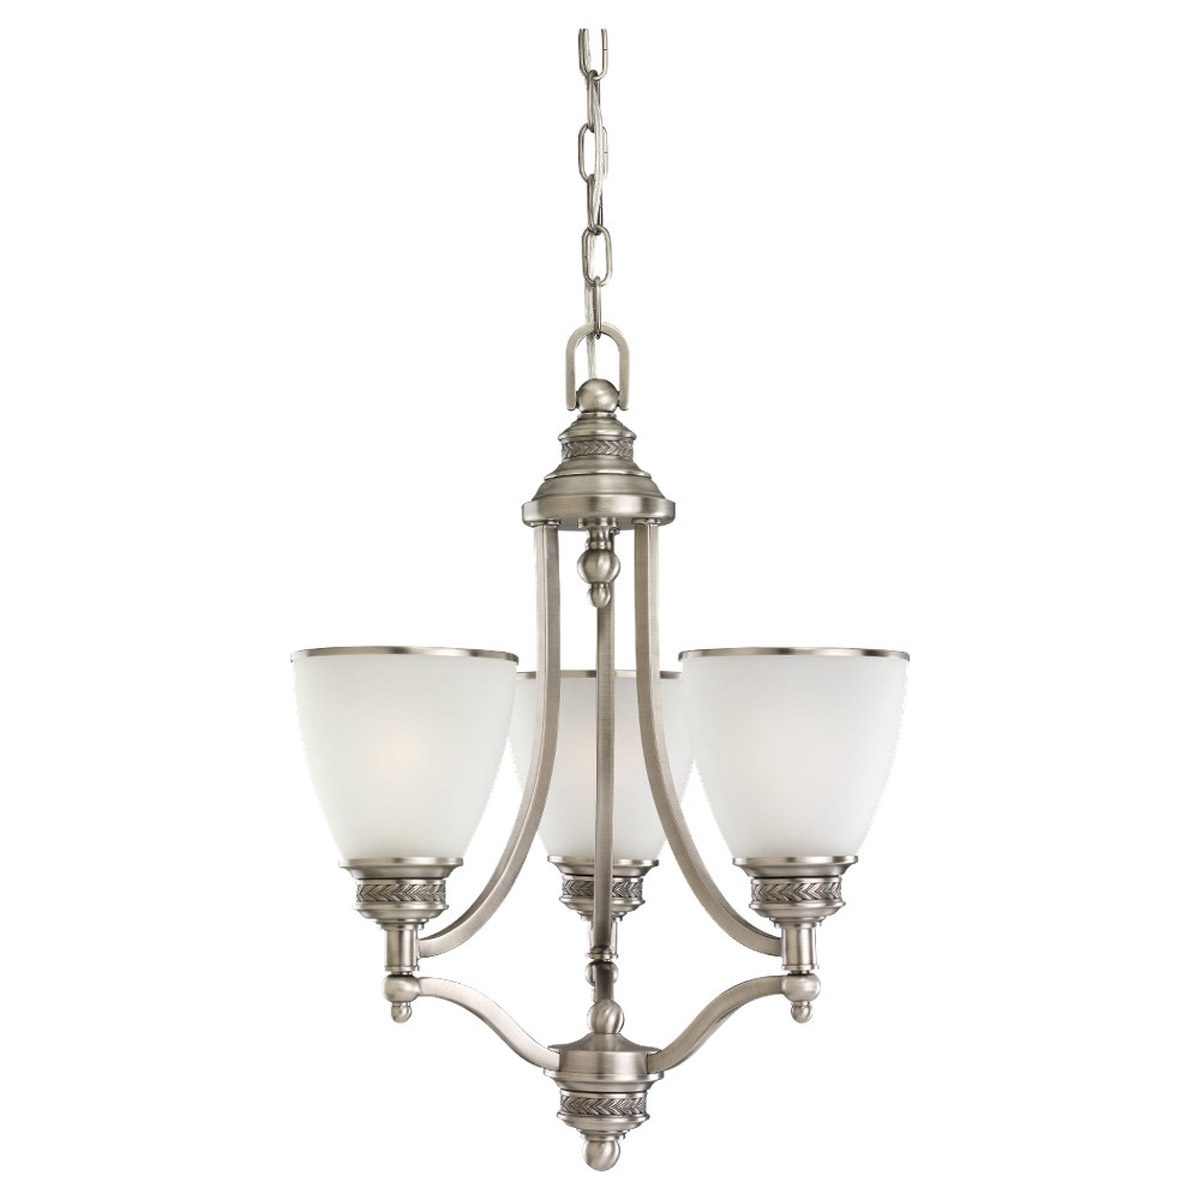 Sea Gull Lighting Laurel Leaf 3 Light Chandelier in Antique Brushed Nickel 31349-965